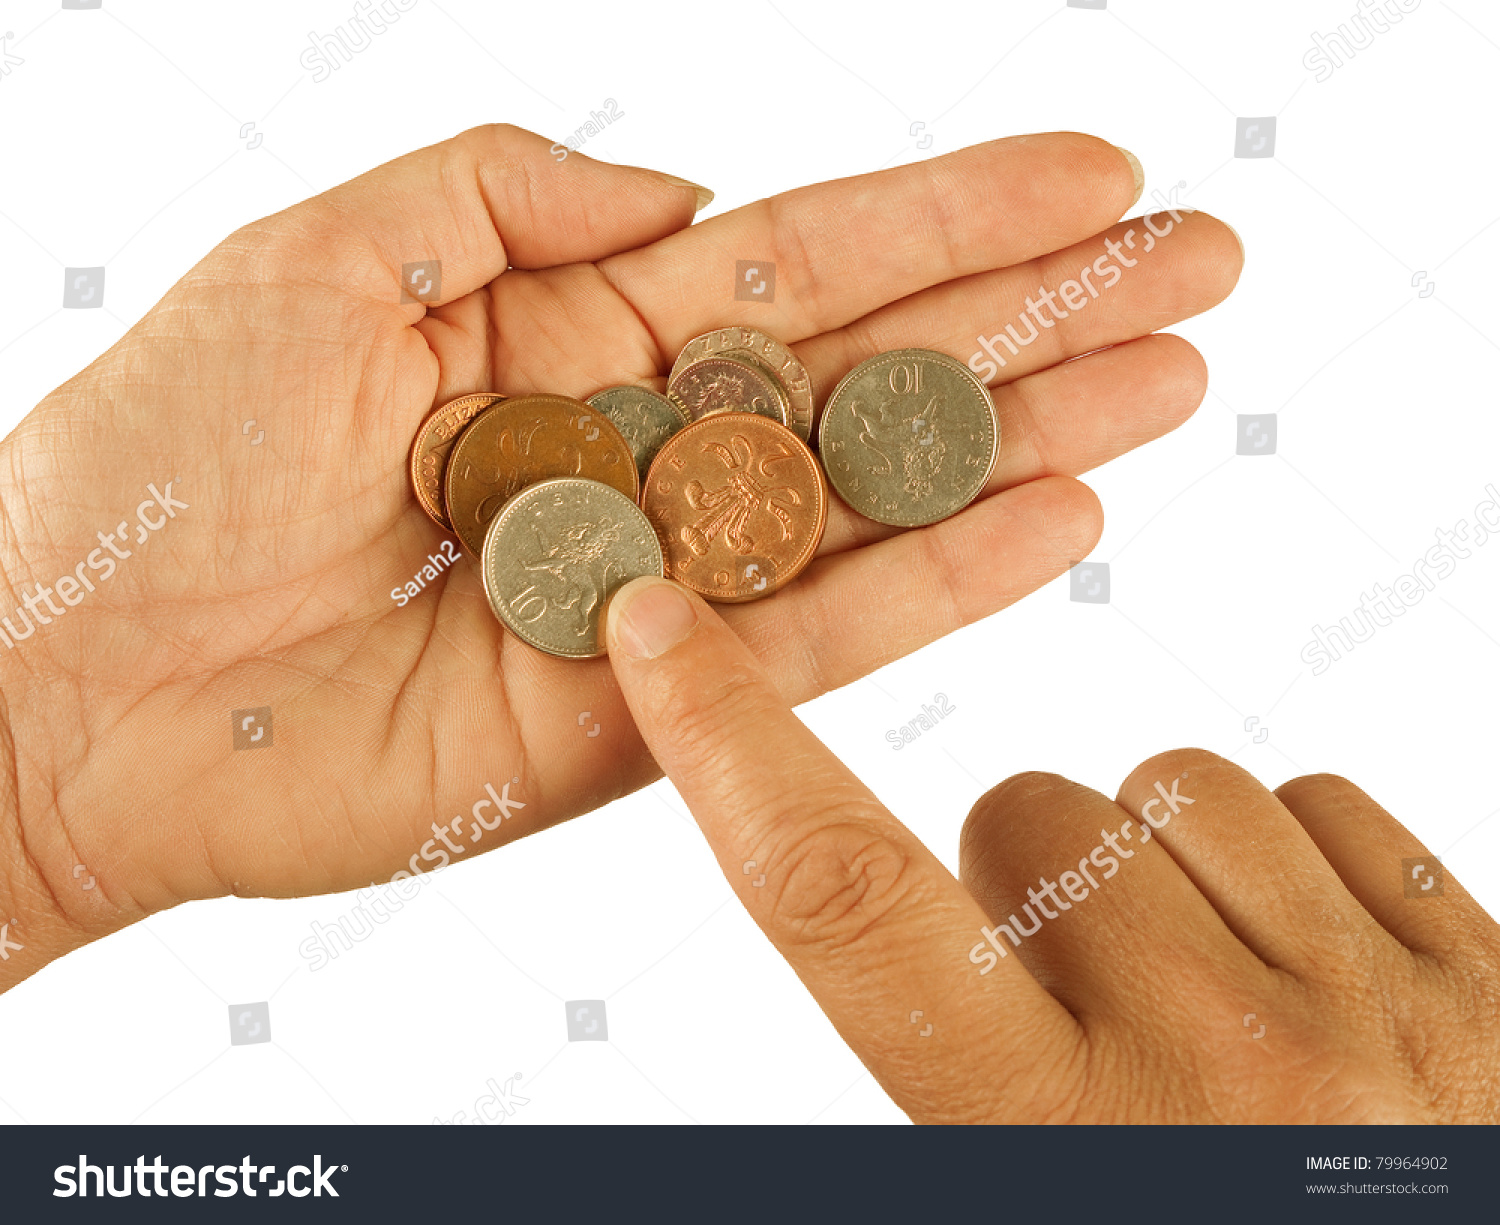 worksheet Counting Change counting small change aka coins uk stock photo 79964902 shutterstock pounds sterling poverty hardship concept